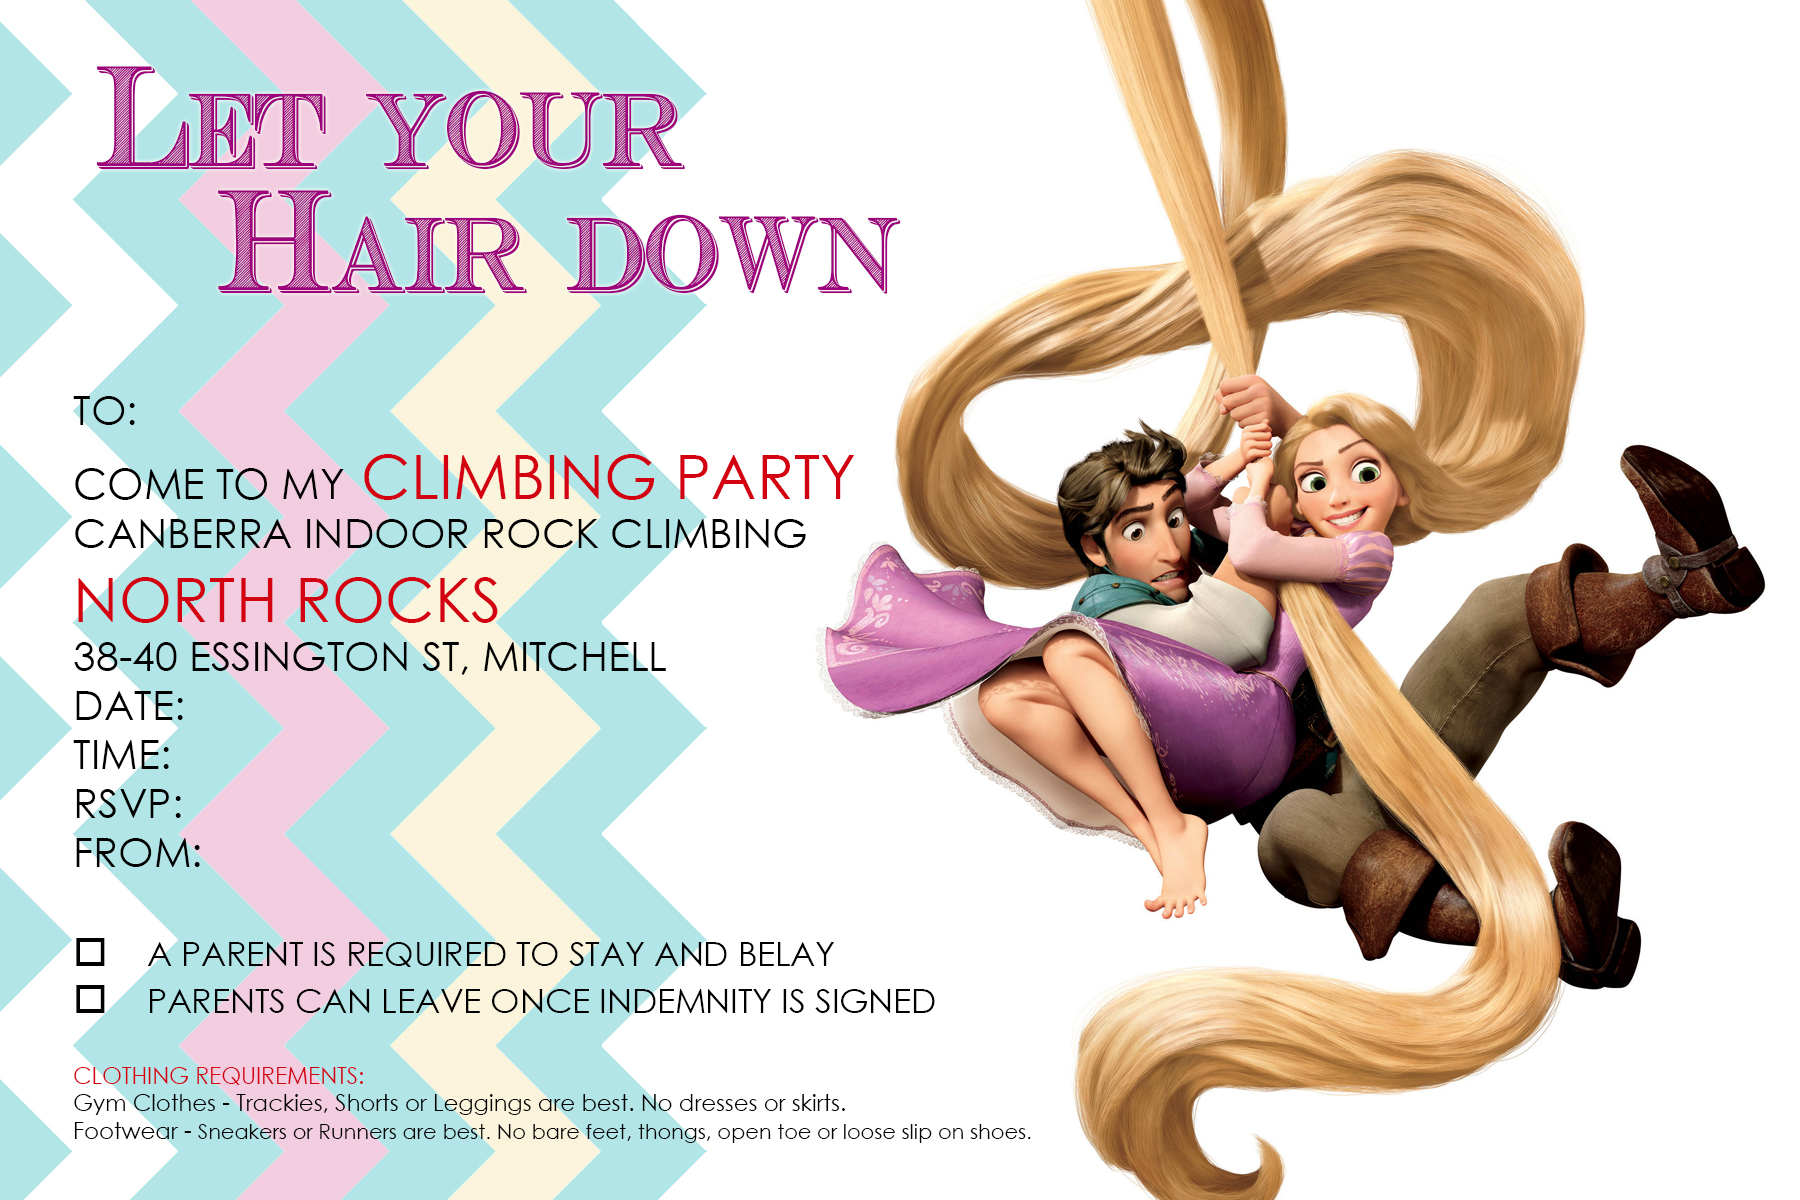 Party Invitations - Canberra Indoor Rock Climbing